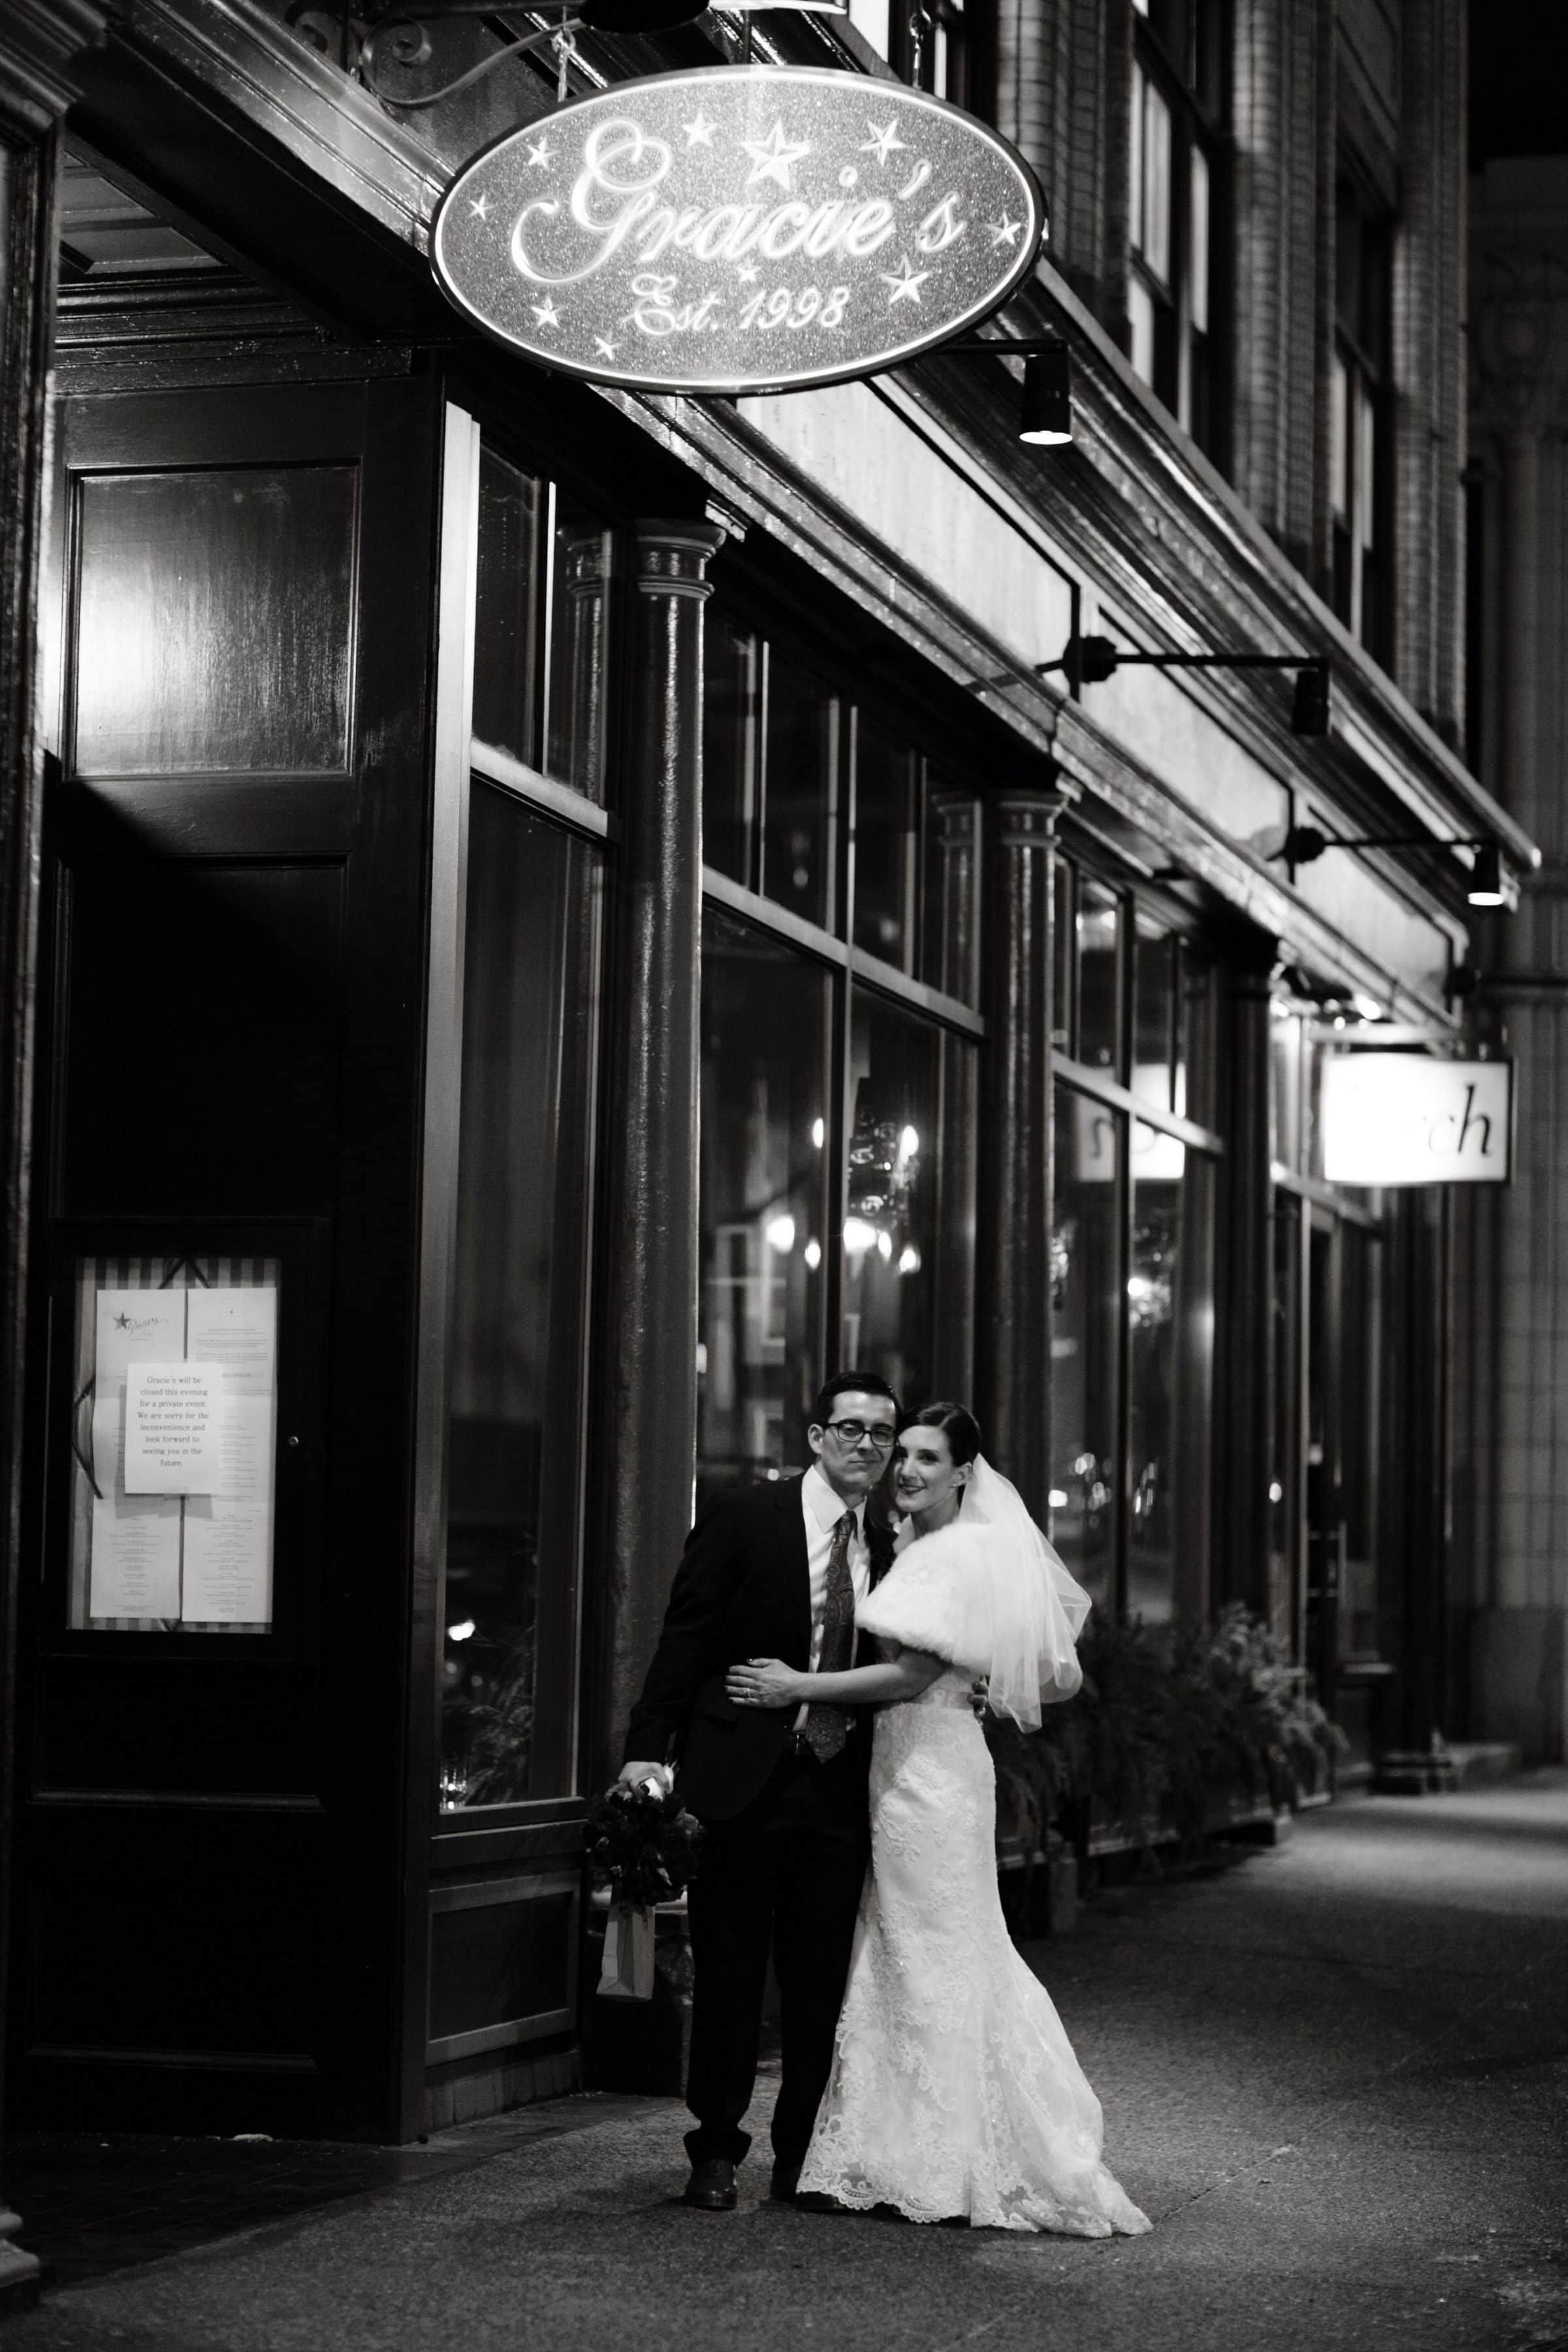 Bride and groom at their wedding reception at Gracie's Providence